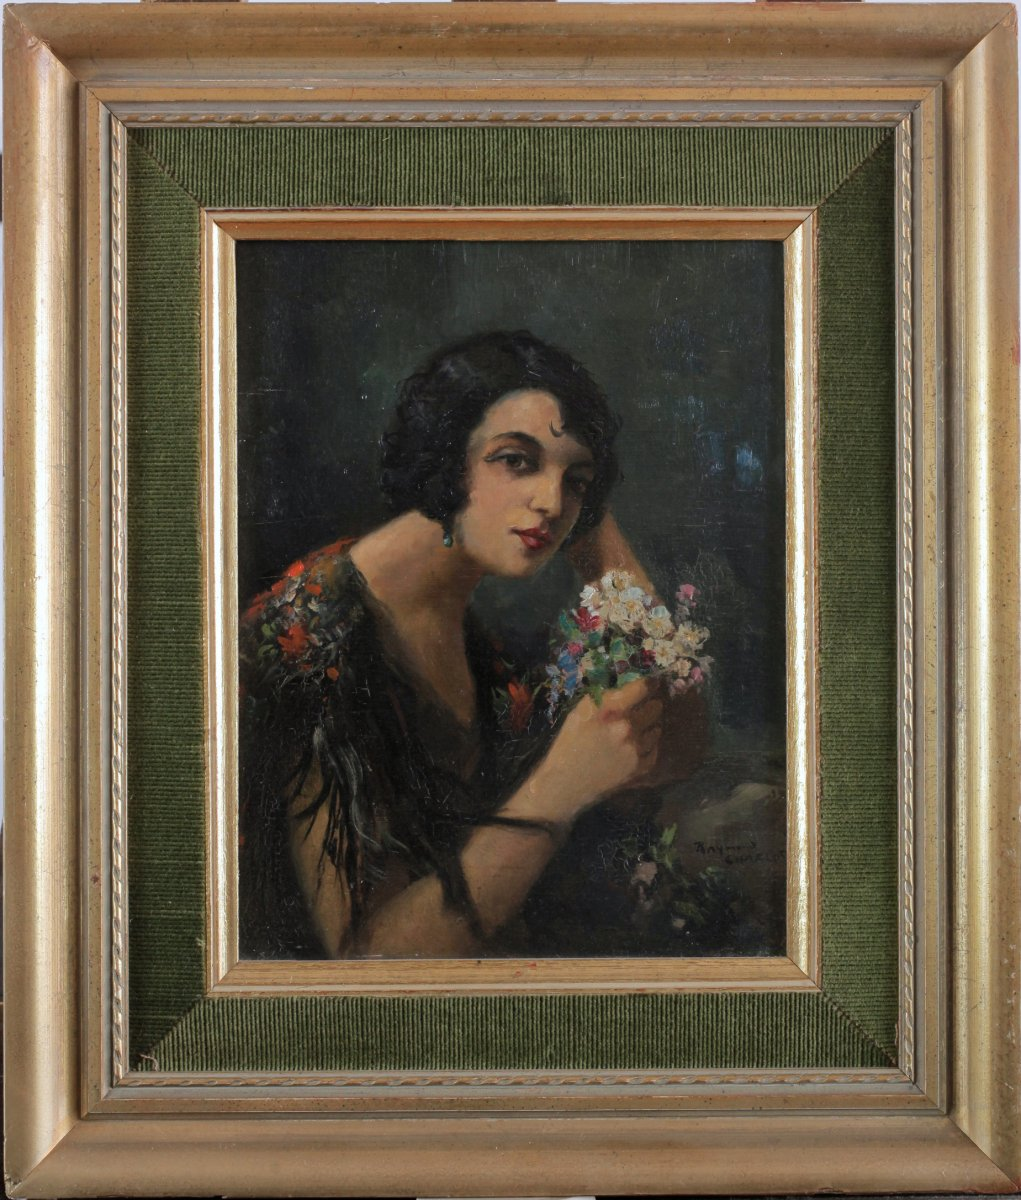 Raymond Charlot, 1879, Portrait, Lady, Young Woman With Bouquet Of Flowers, Price Up To 3.800 €